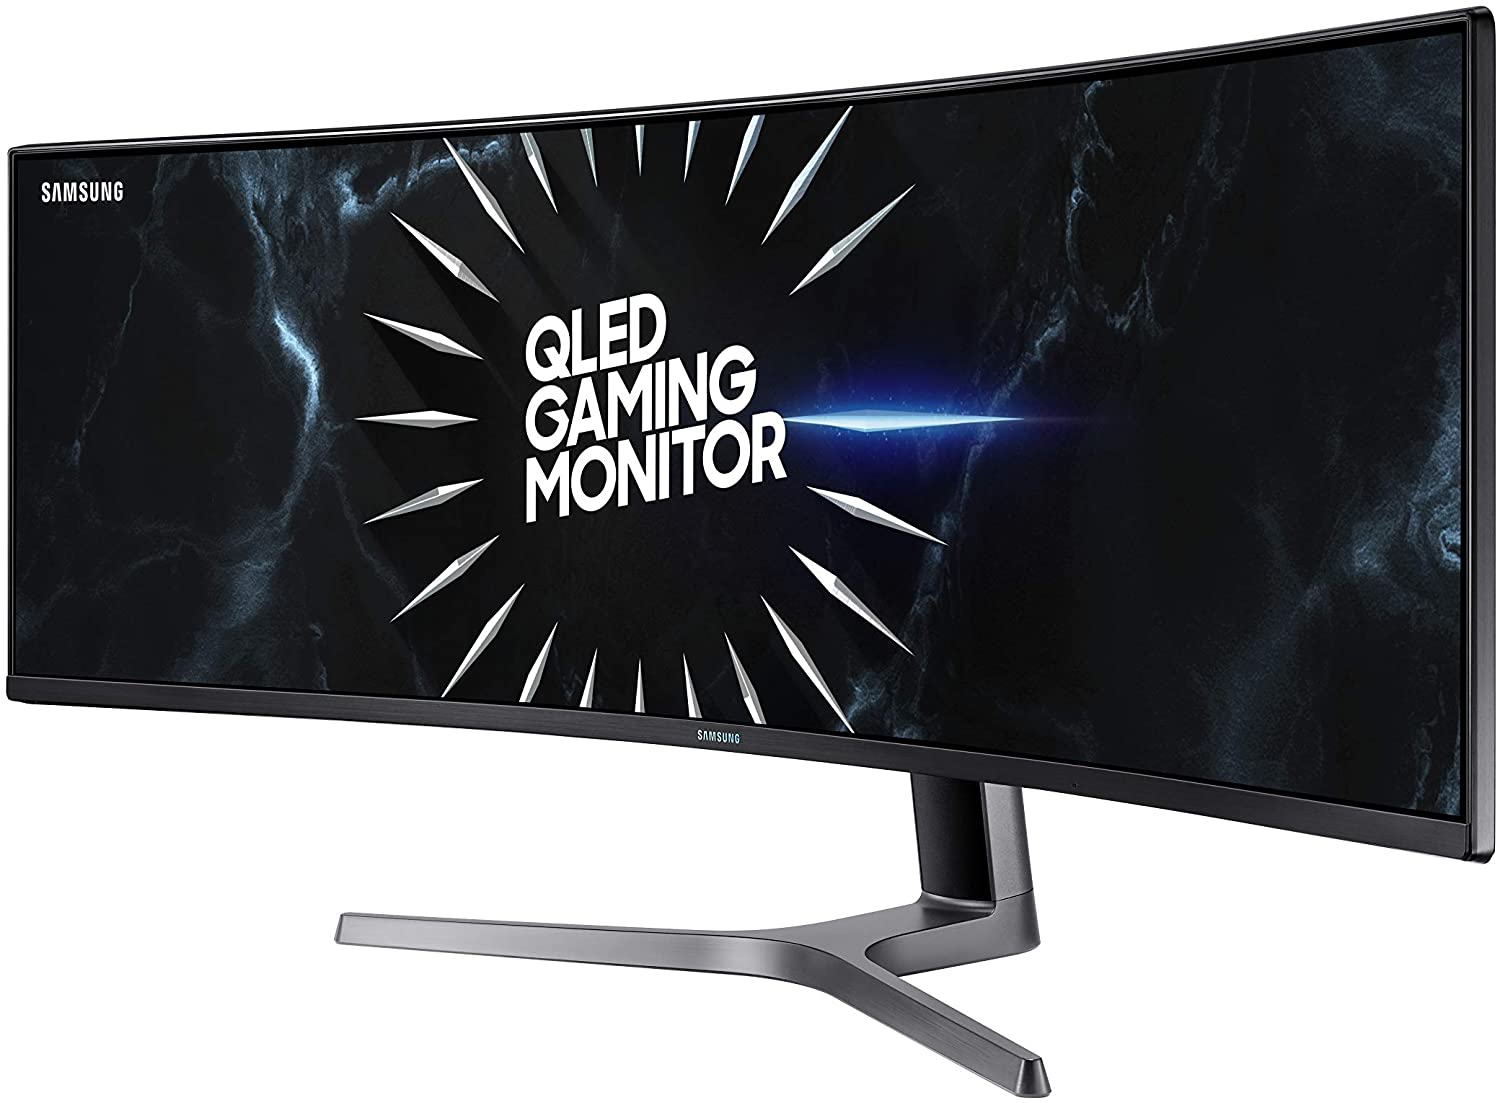 Samsung CRG9 49-inch 120hz QHD 1440p UltraWide price drops by $400